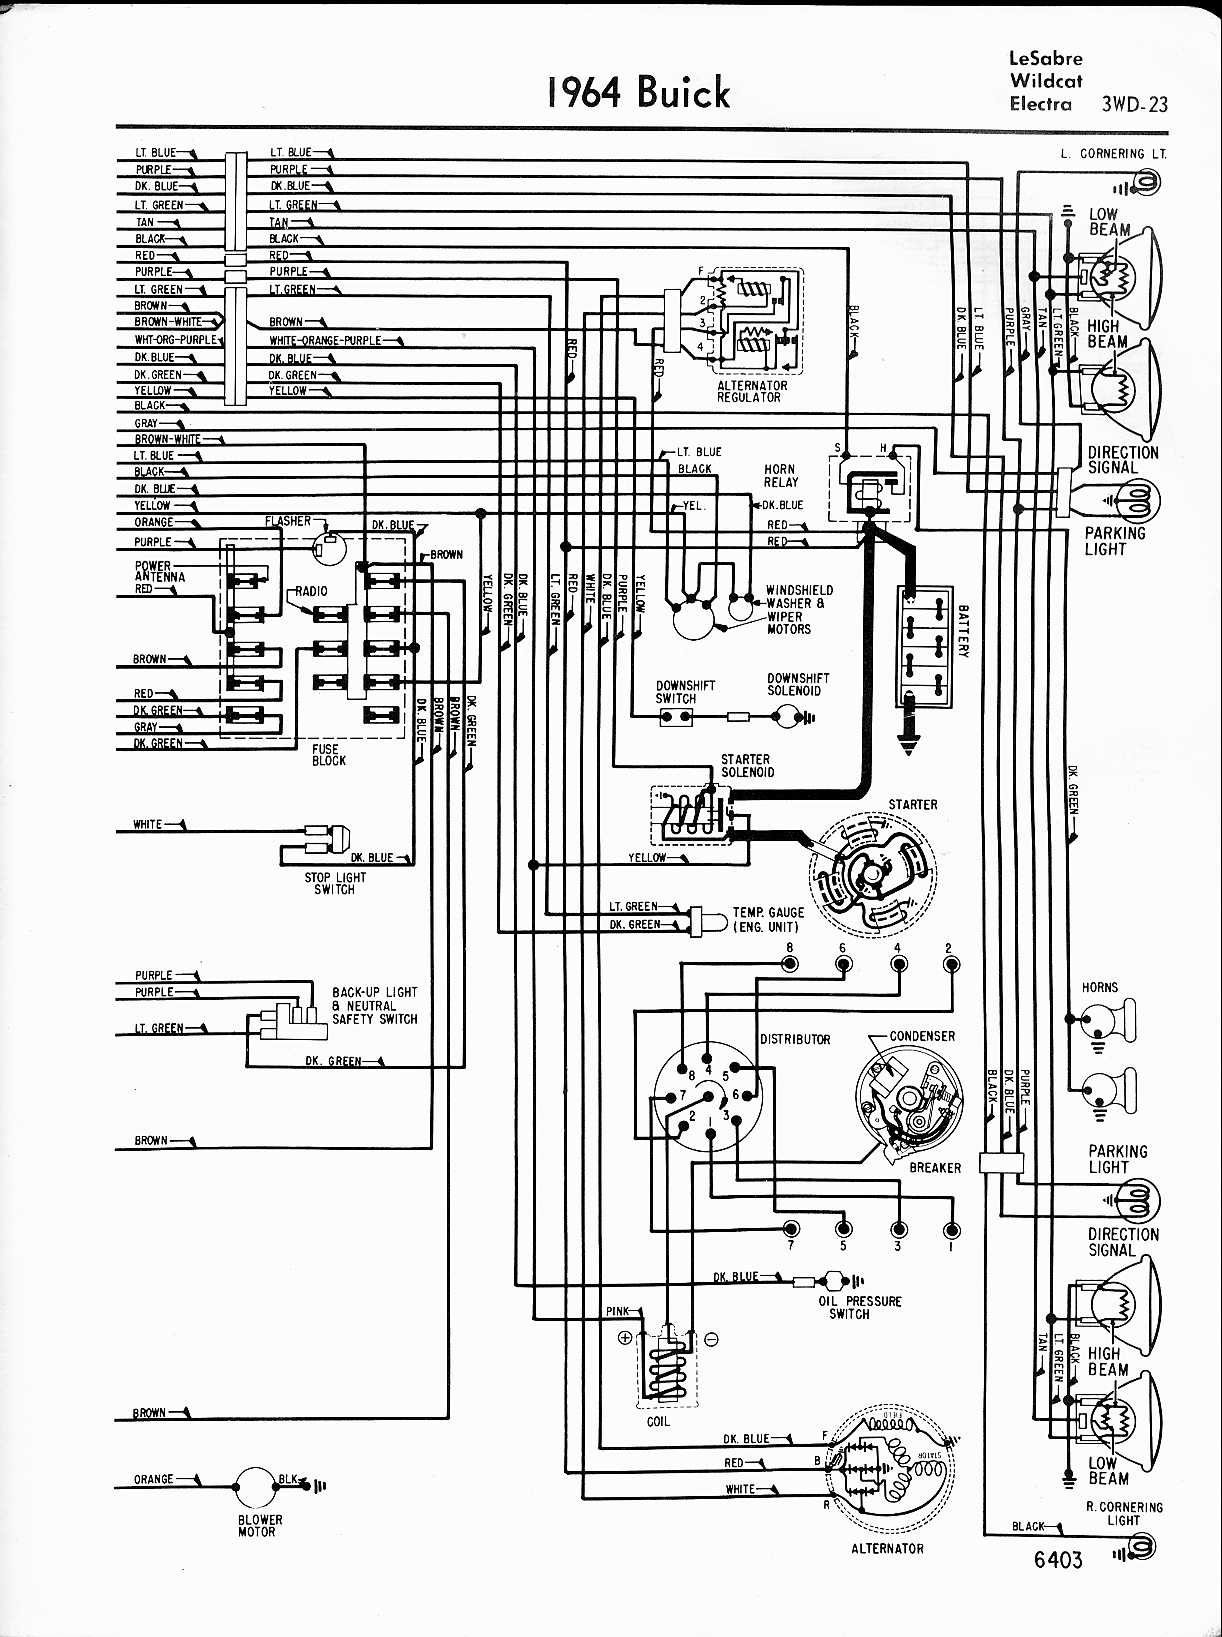 bmw e46 engine wiring diagrams best wiring library Seat Wiring Diagram BMW M5 1970 bmw 2002 vacuum diagram basic guide wiring diagram u2022 rh needpixies 1972 bmw 2002